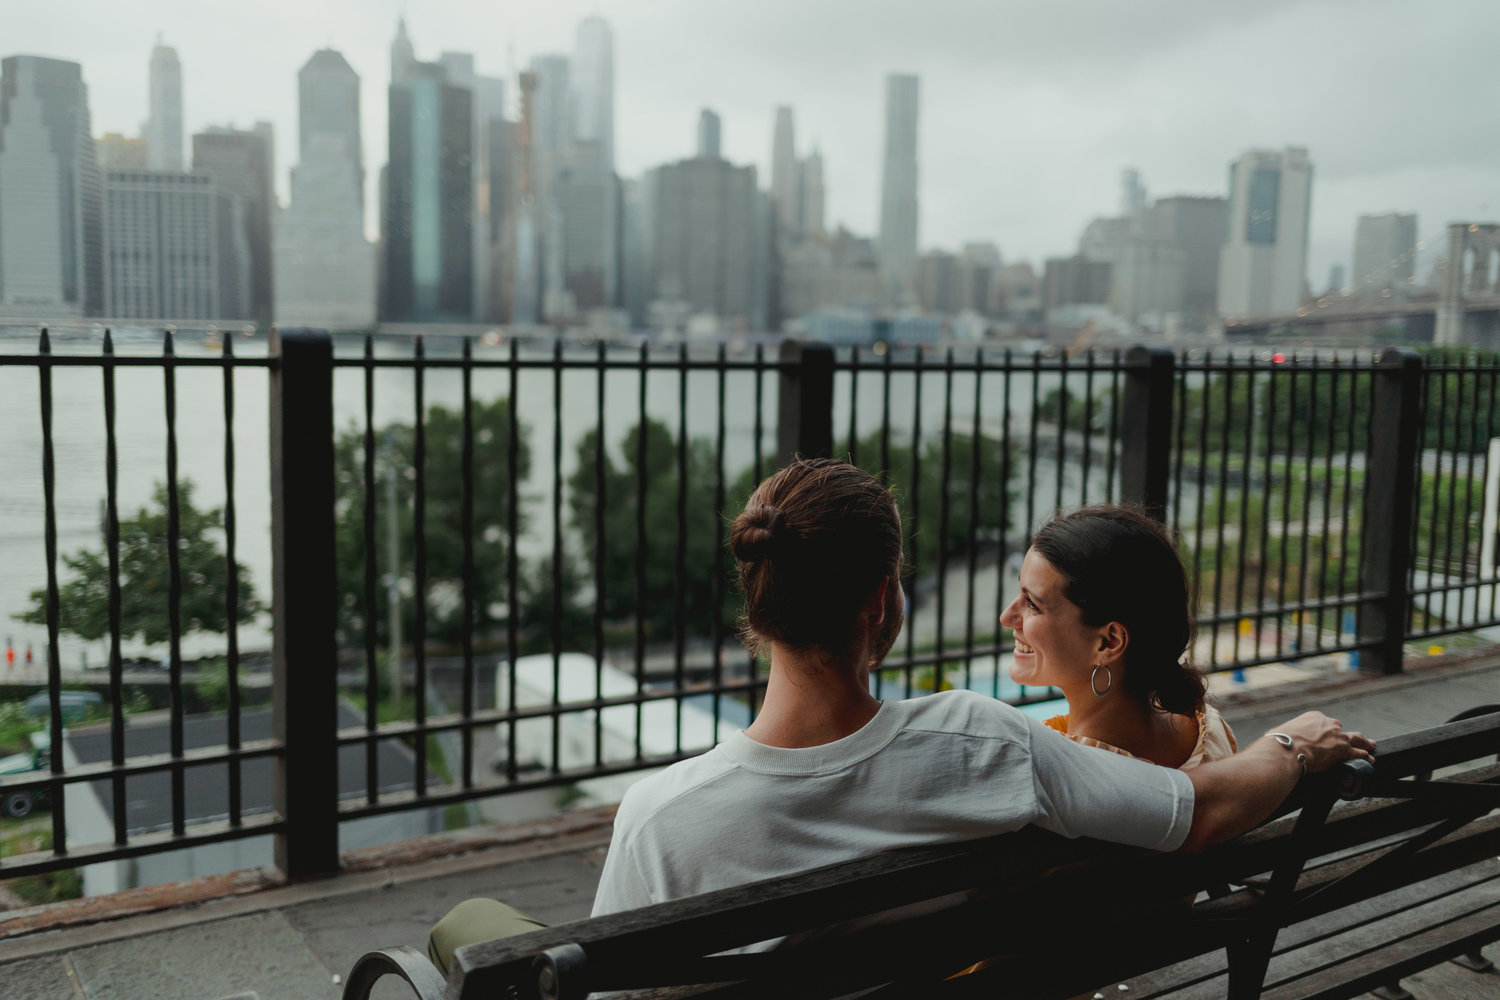 nyc photographer, brooklyn engagement session, brooklyn couples photo session, brooklyn heights couples photos, brooklyn photographer, brooklyn wedding photographer,